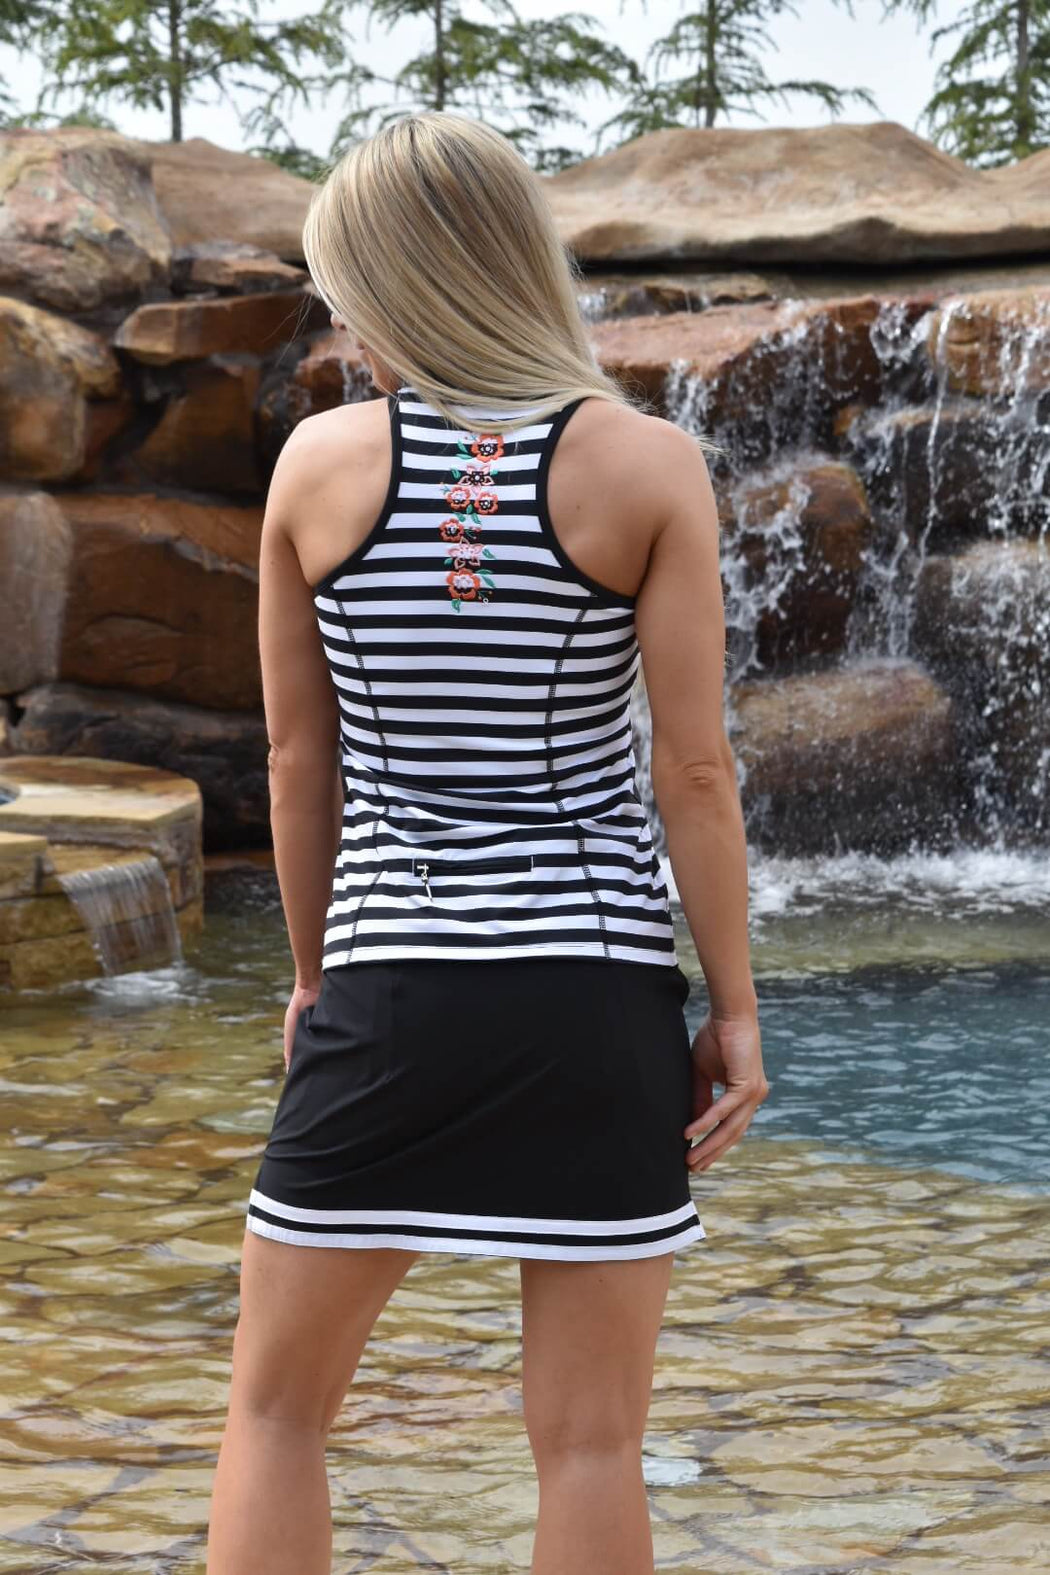 NEW! Limited Edition! Embroidered Racerback Golf Polo - Stripes